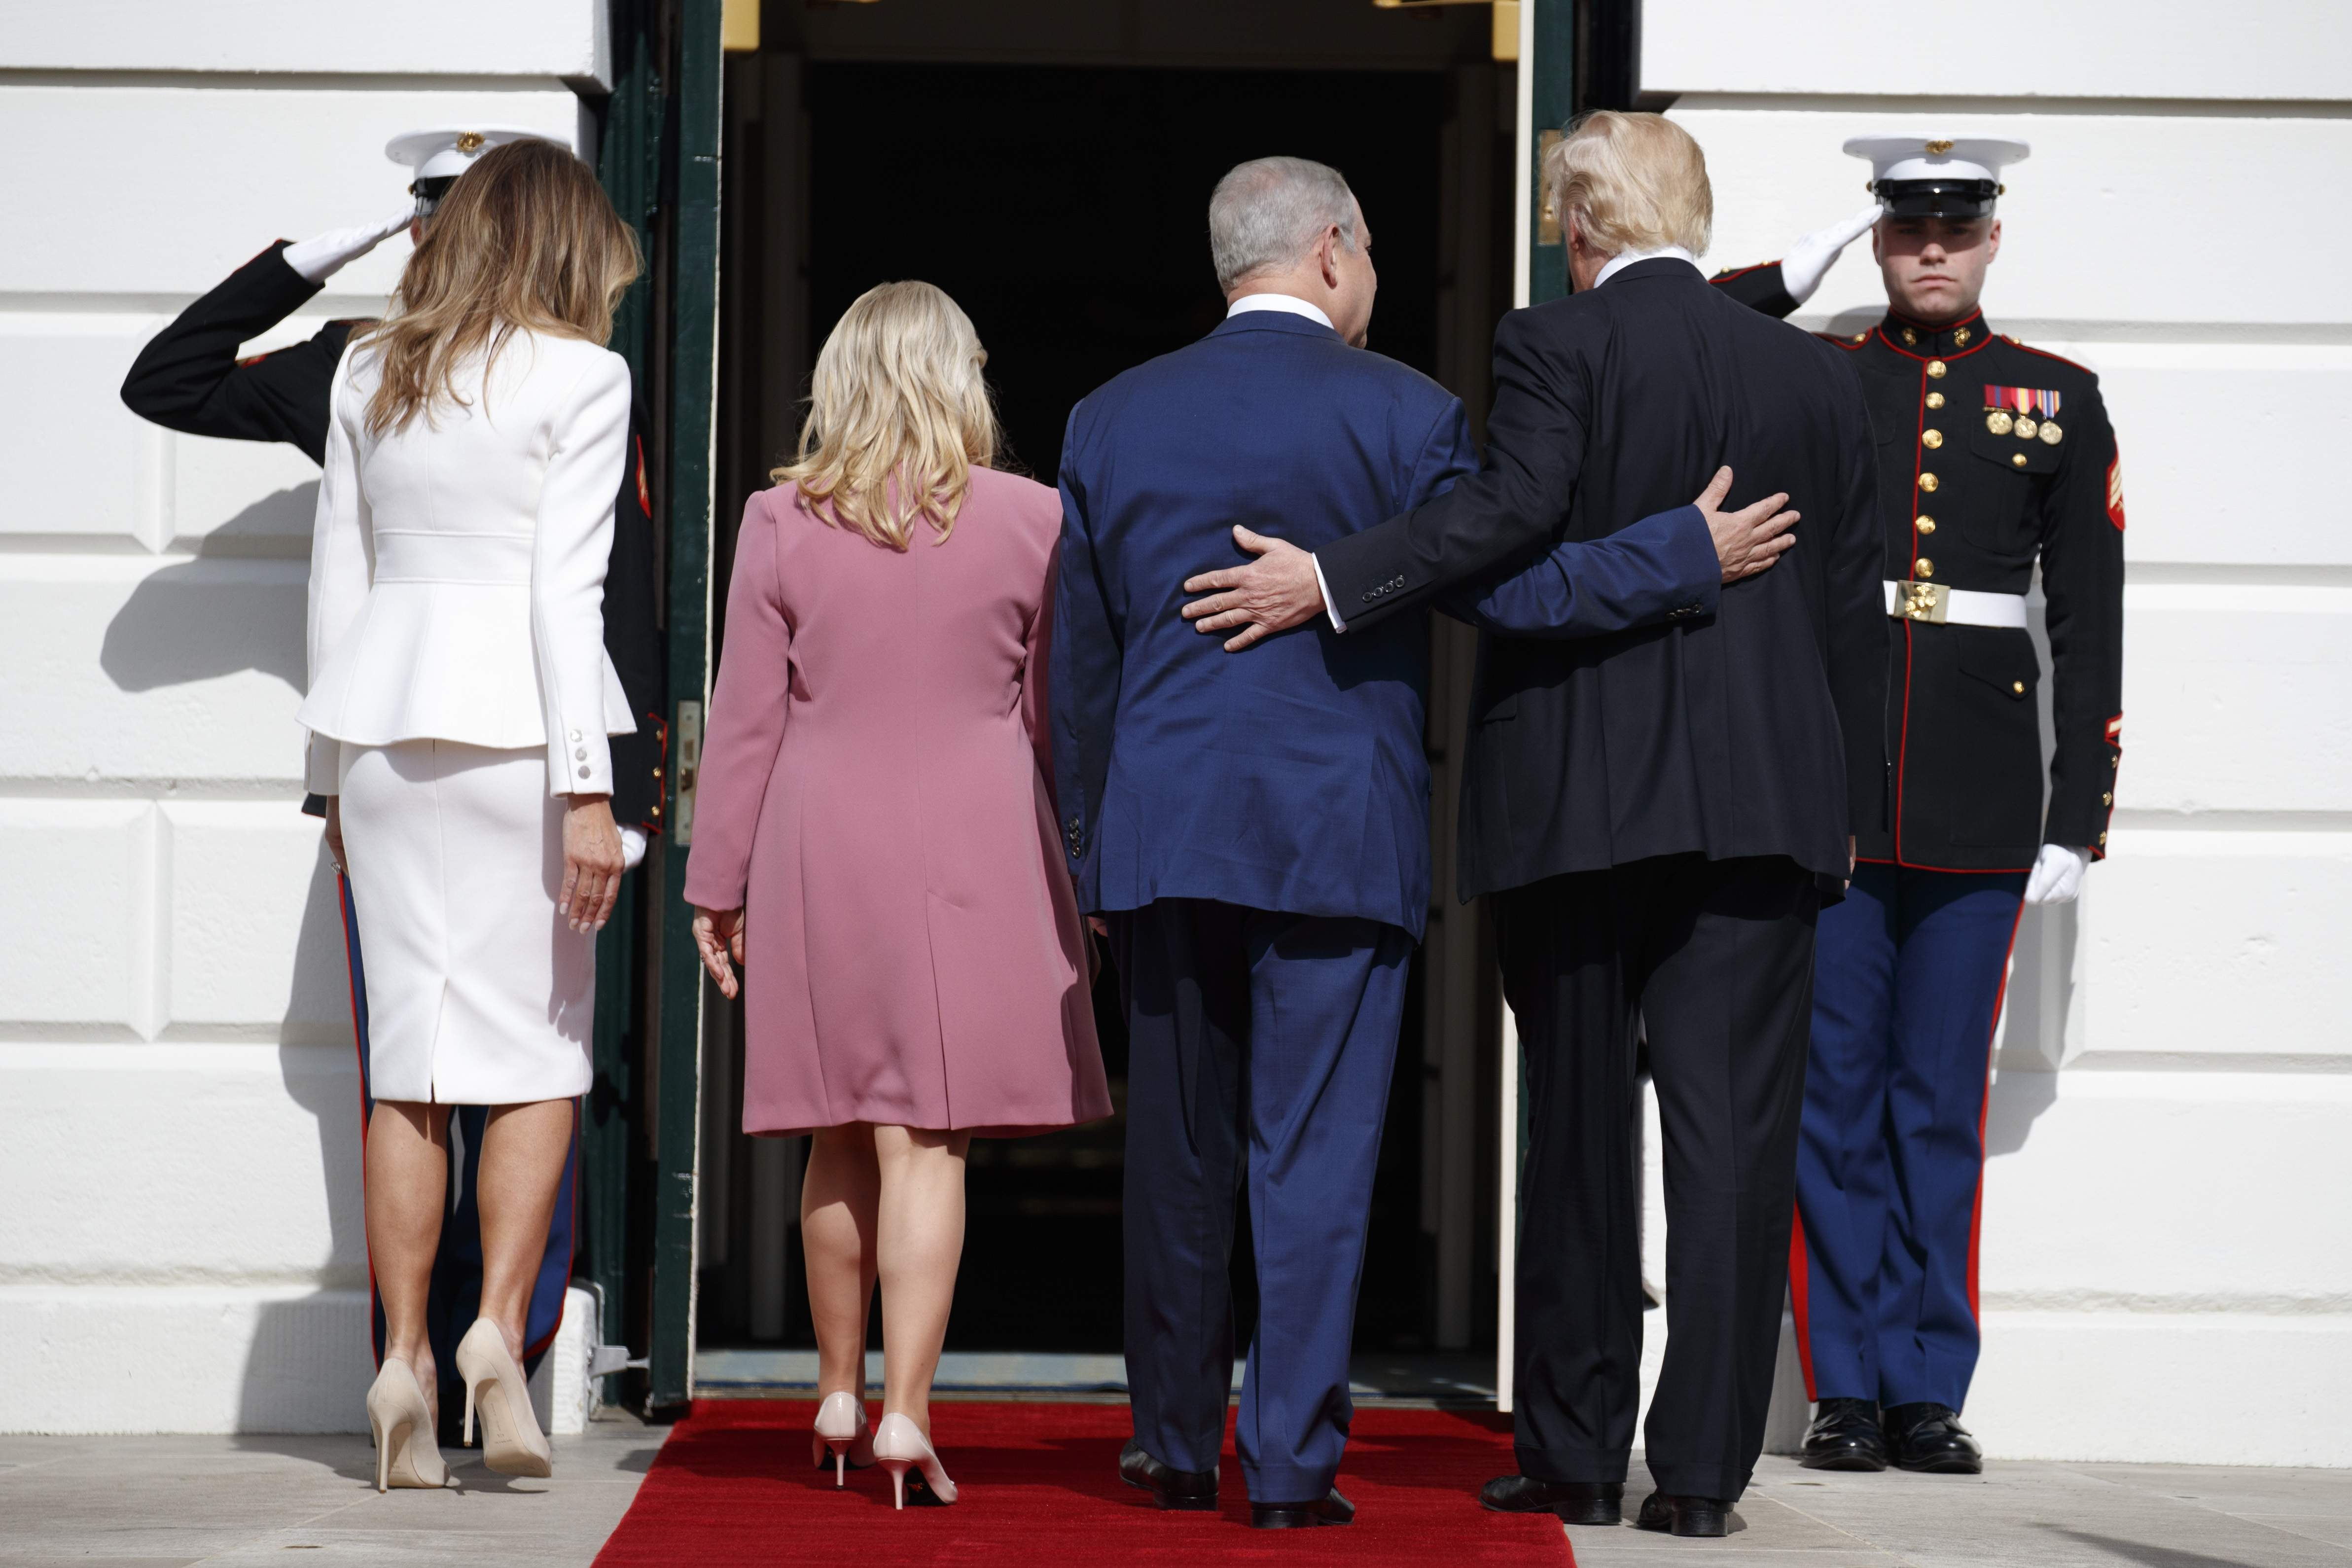 DAY 27 - In this Feb. 15, 2017, file photo, President Donald Trump, first lady Melania Trump, Israeli Prime Minister Benjamin Netanyahu and his wife Sara walk into the White House in Washington. (AP Photo/Evan Vucci, File)